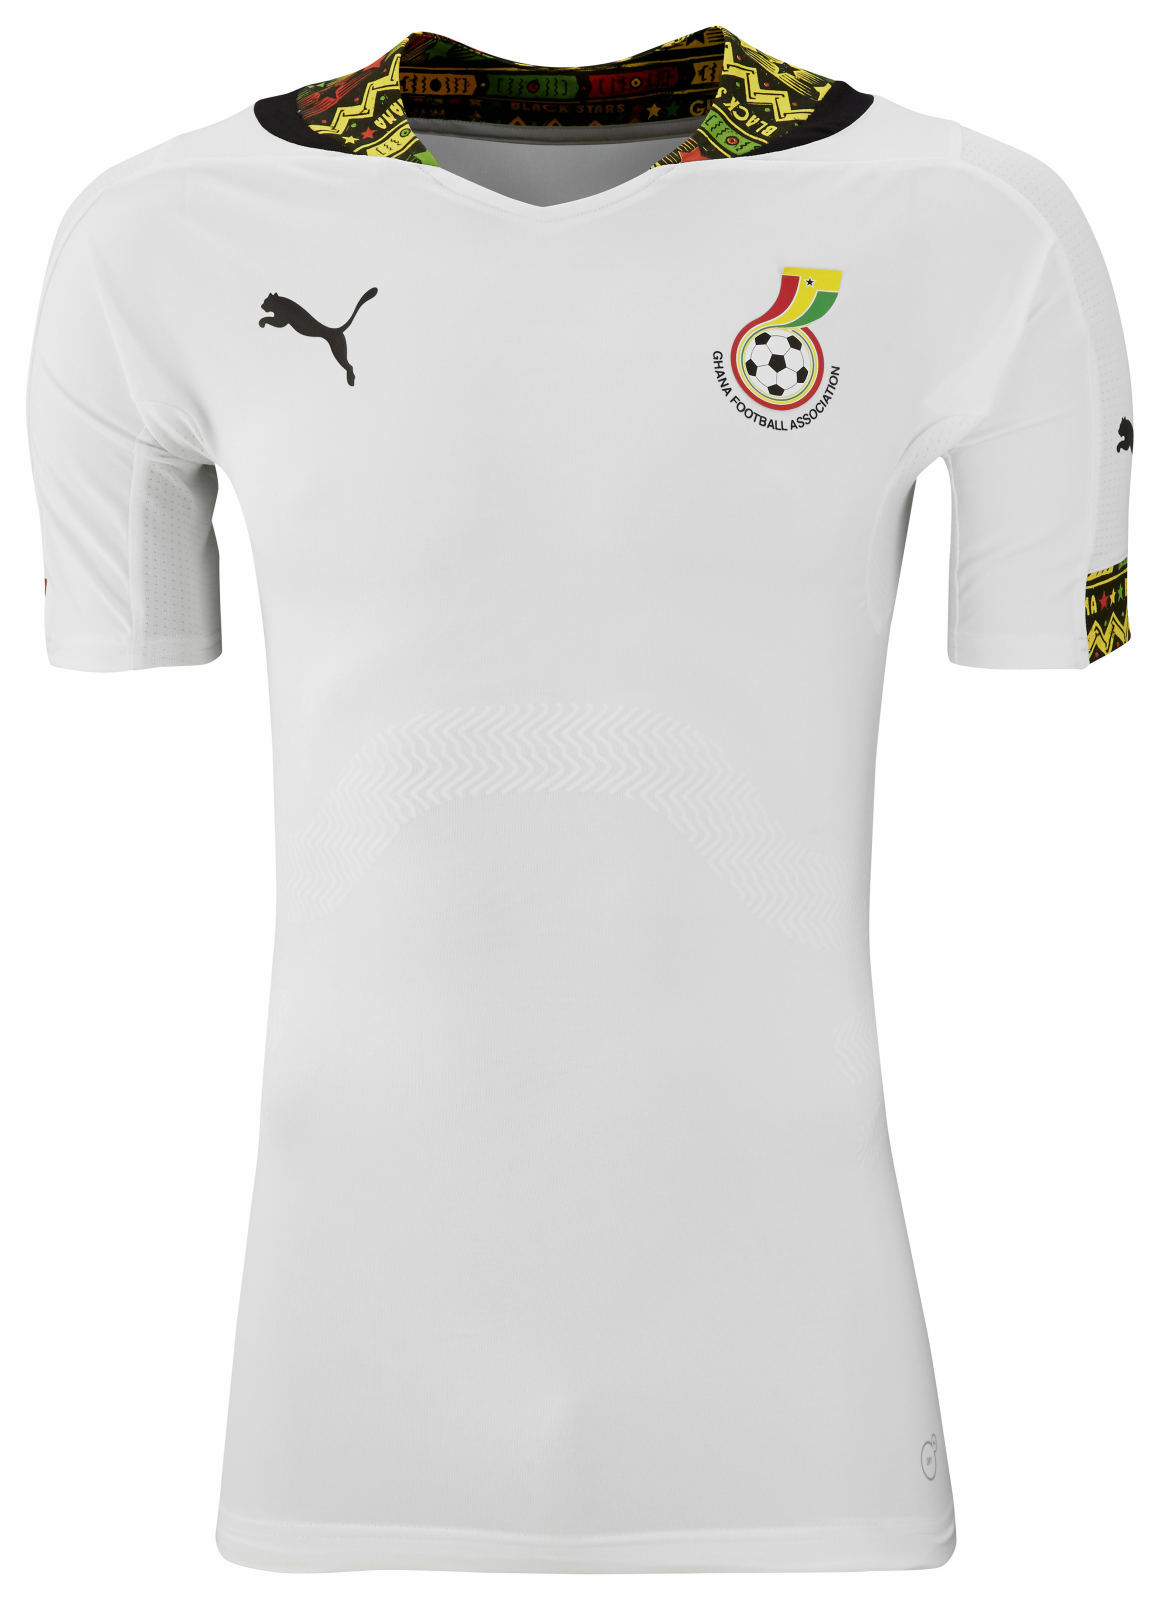 watch 34dc9 614c7 France World Cup T Shirt 2014